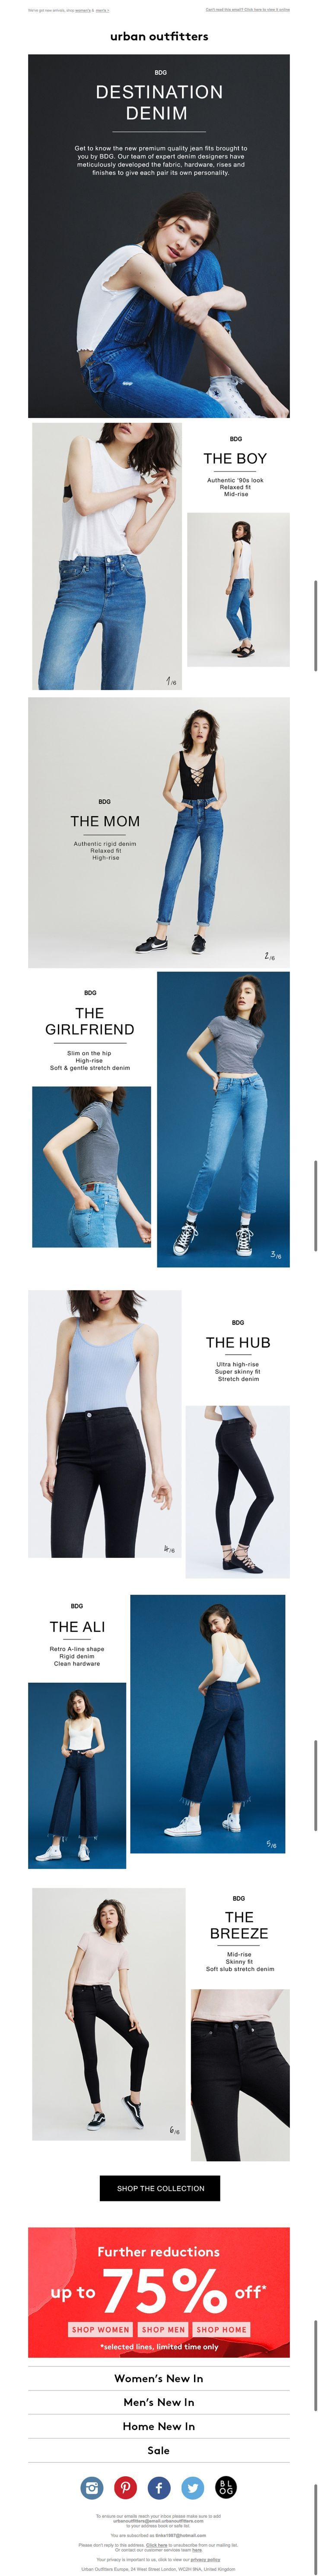 Denim Email From Urban Outfitters How To End A Cover Letter